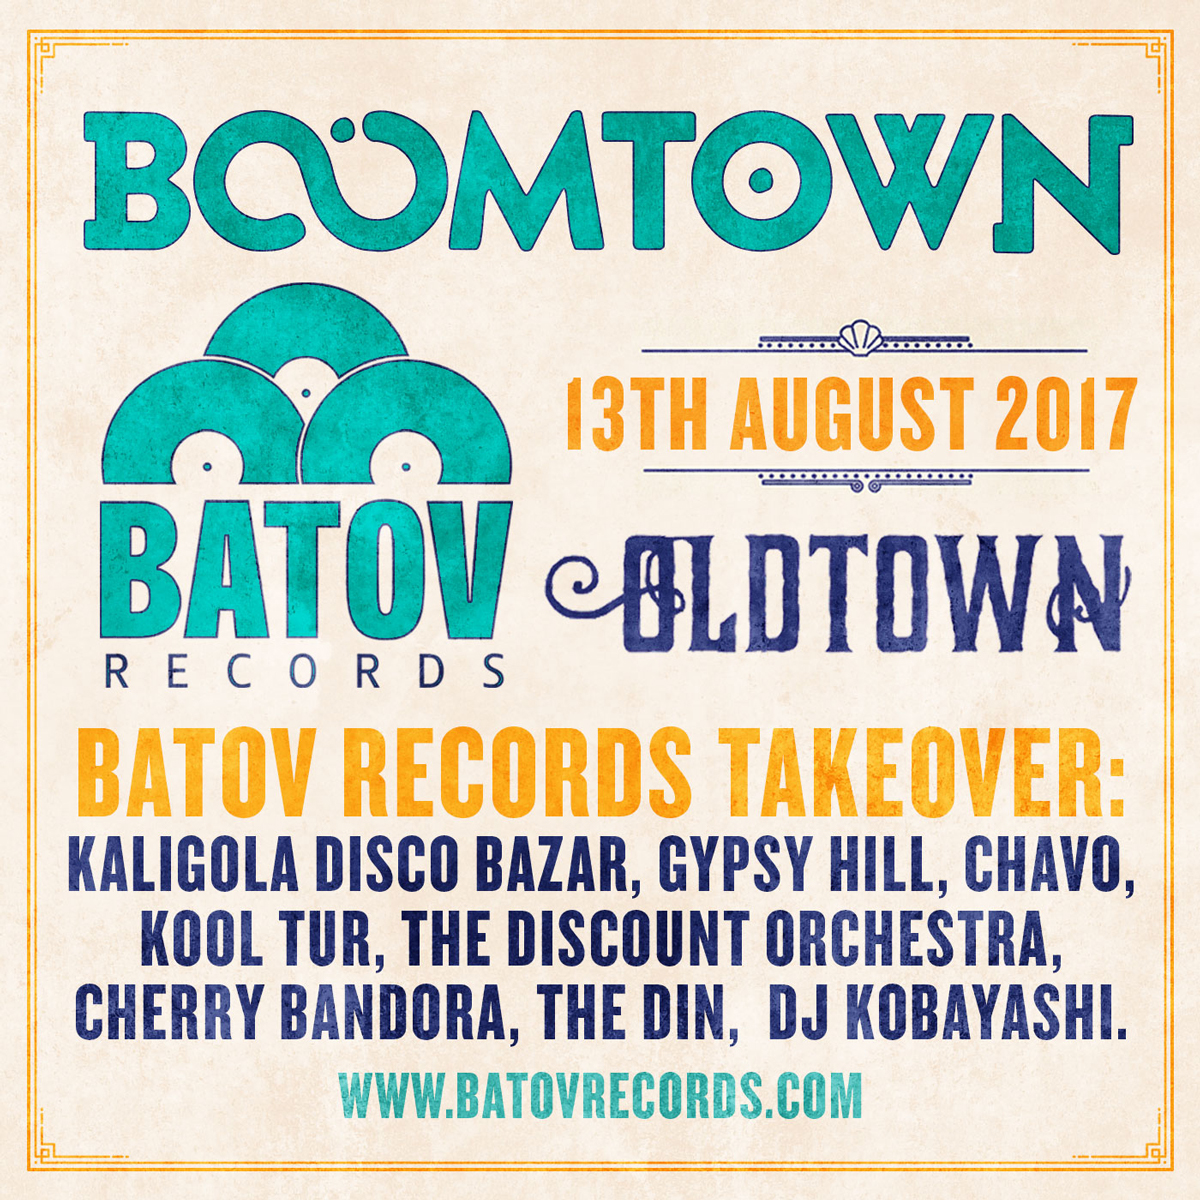 Batov-Records-Boomtown-sticker